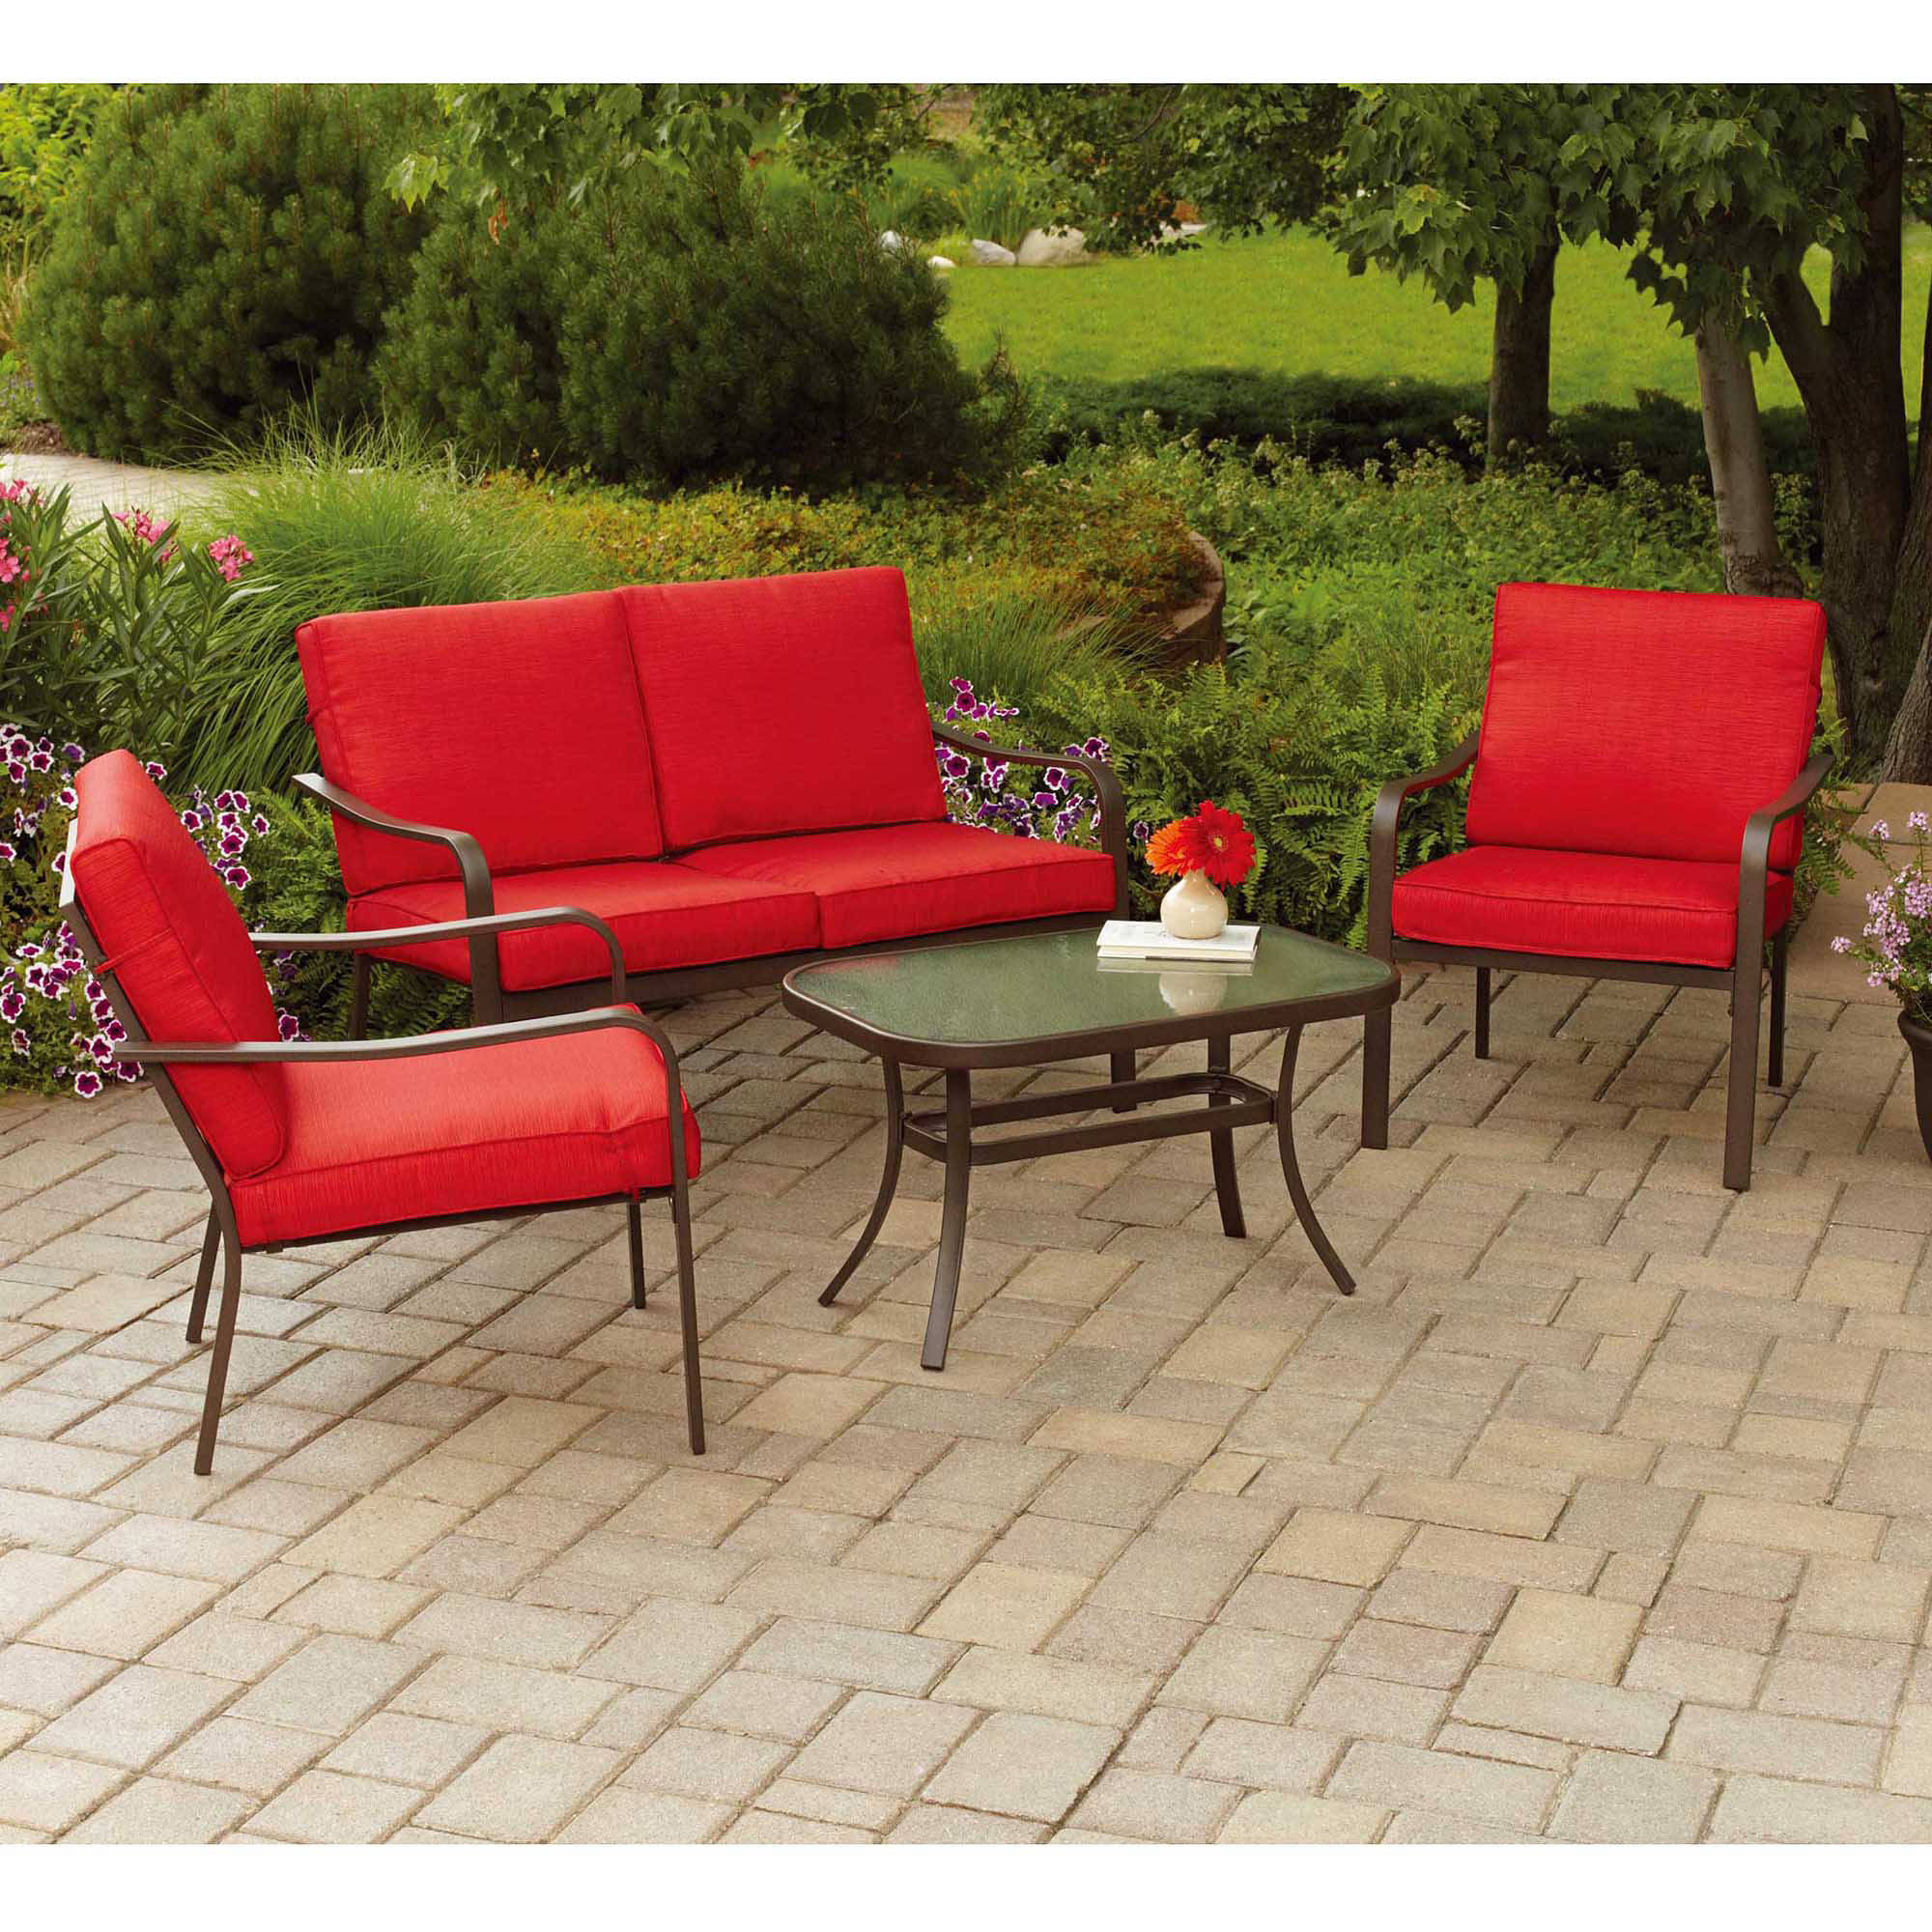 Mainstays Spring Creek 5 Piece Patio Dining Set, Seats 4   Walmart.com Part 92